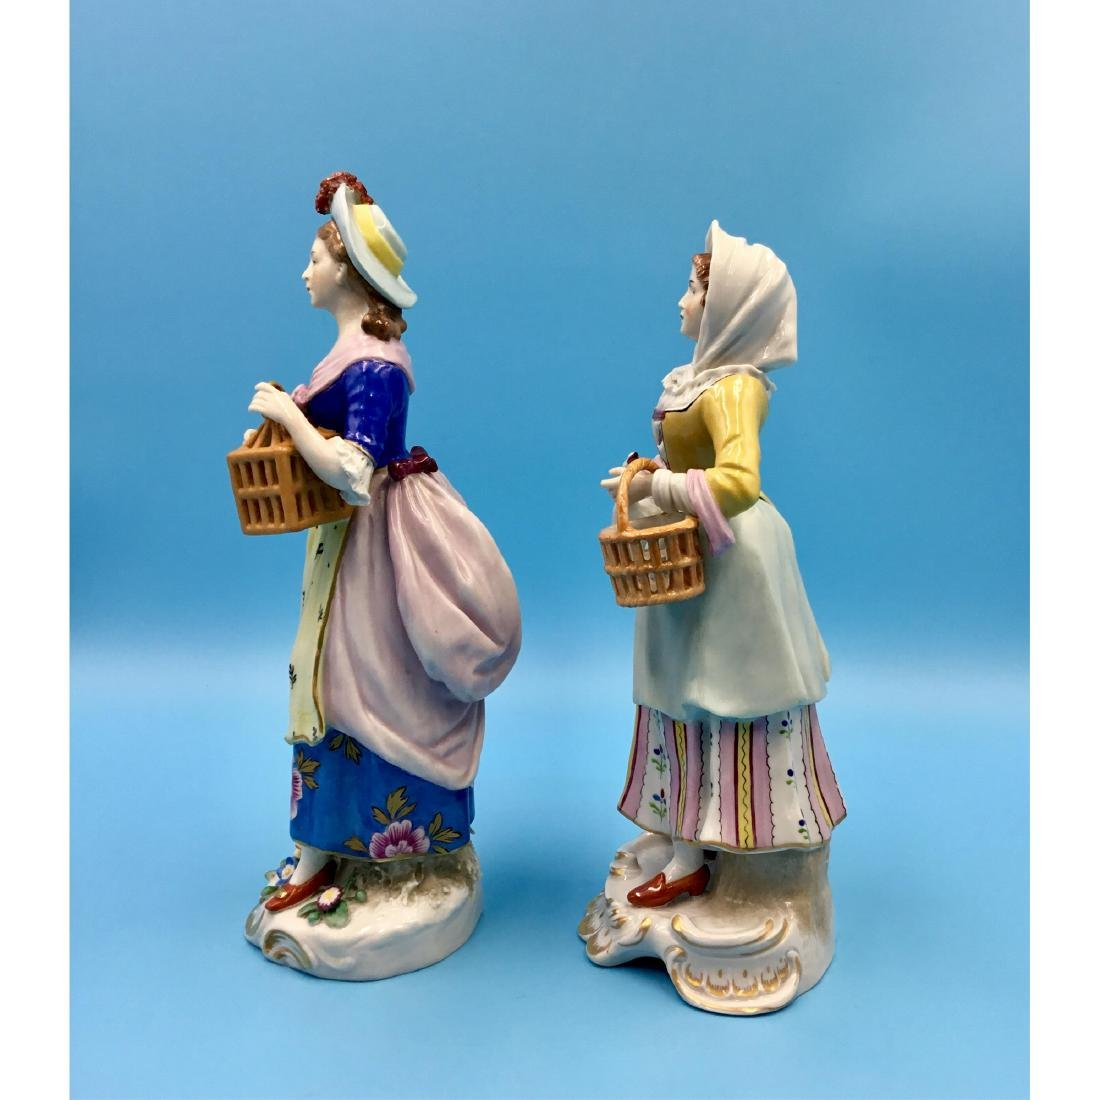 PAIR OF SITZENDORF GERMAN PORCELAIN FIGURINES - 2